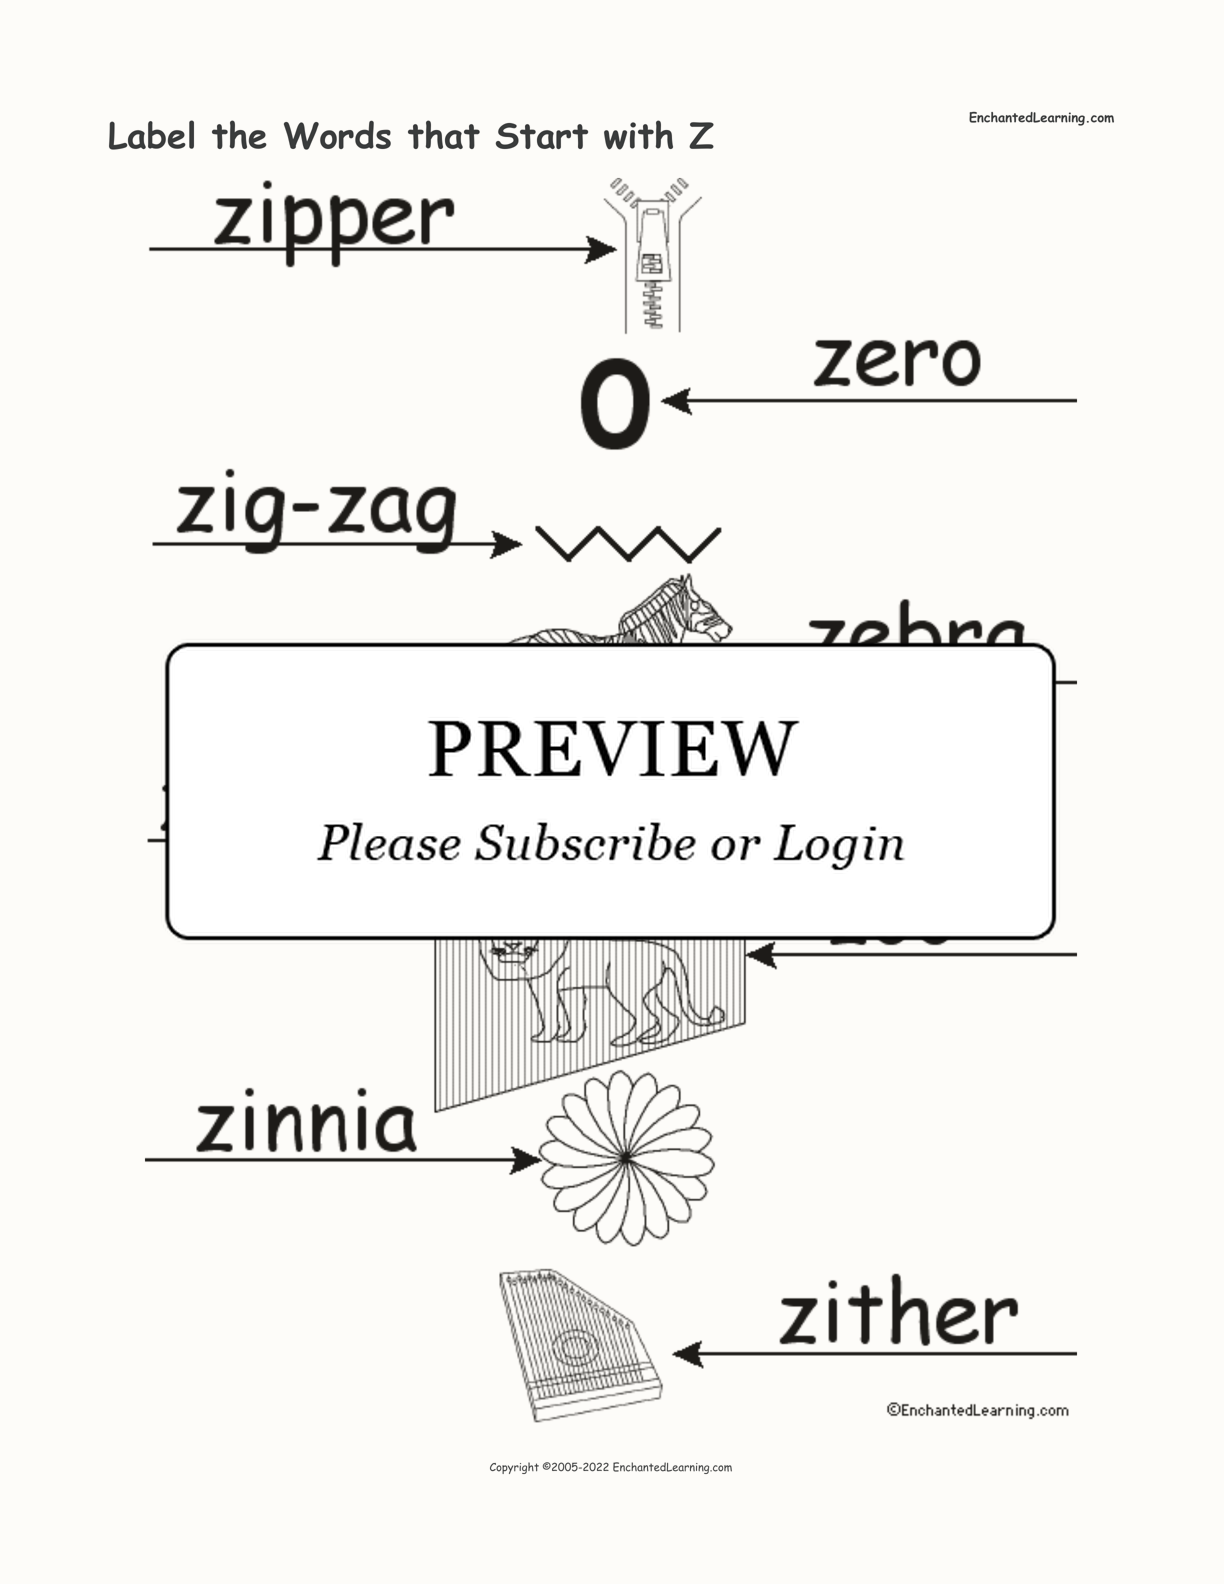 Label the Words that Start with Z interactive worksheet page 2